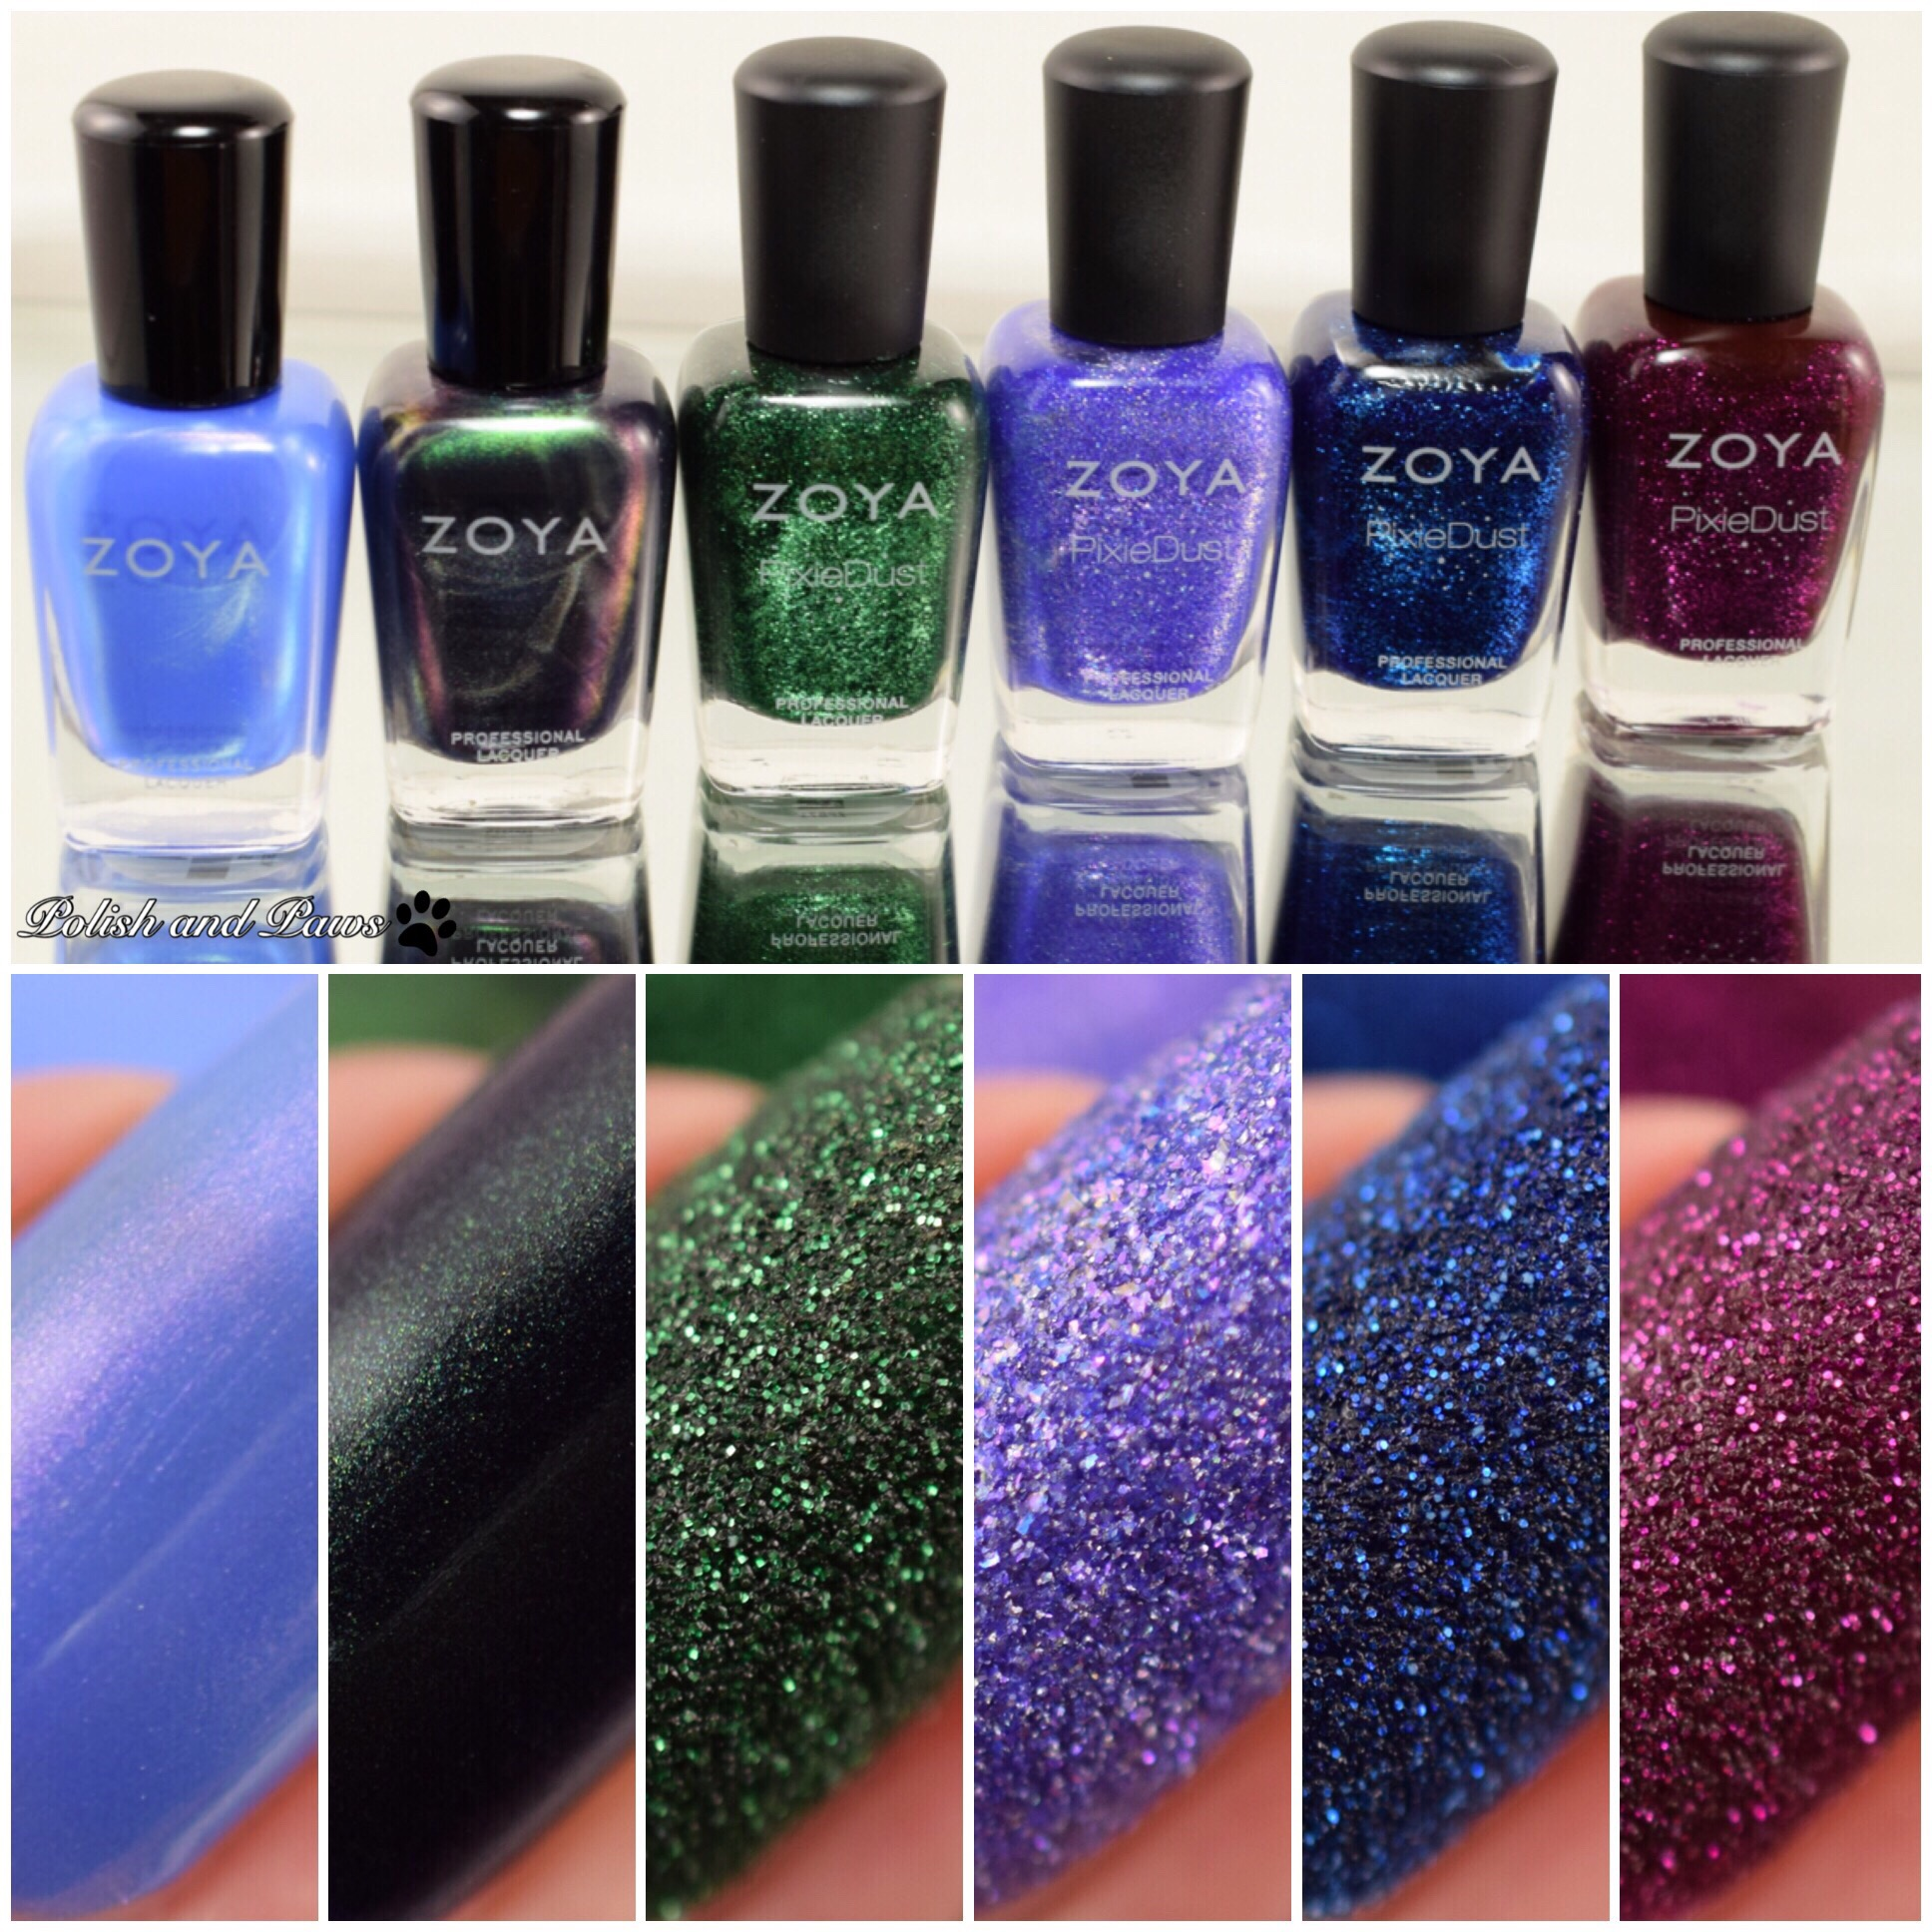 Zoya Enchanted Collection ~ Winter Holiday 2016 | Polish and Paws